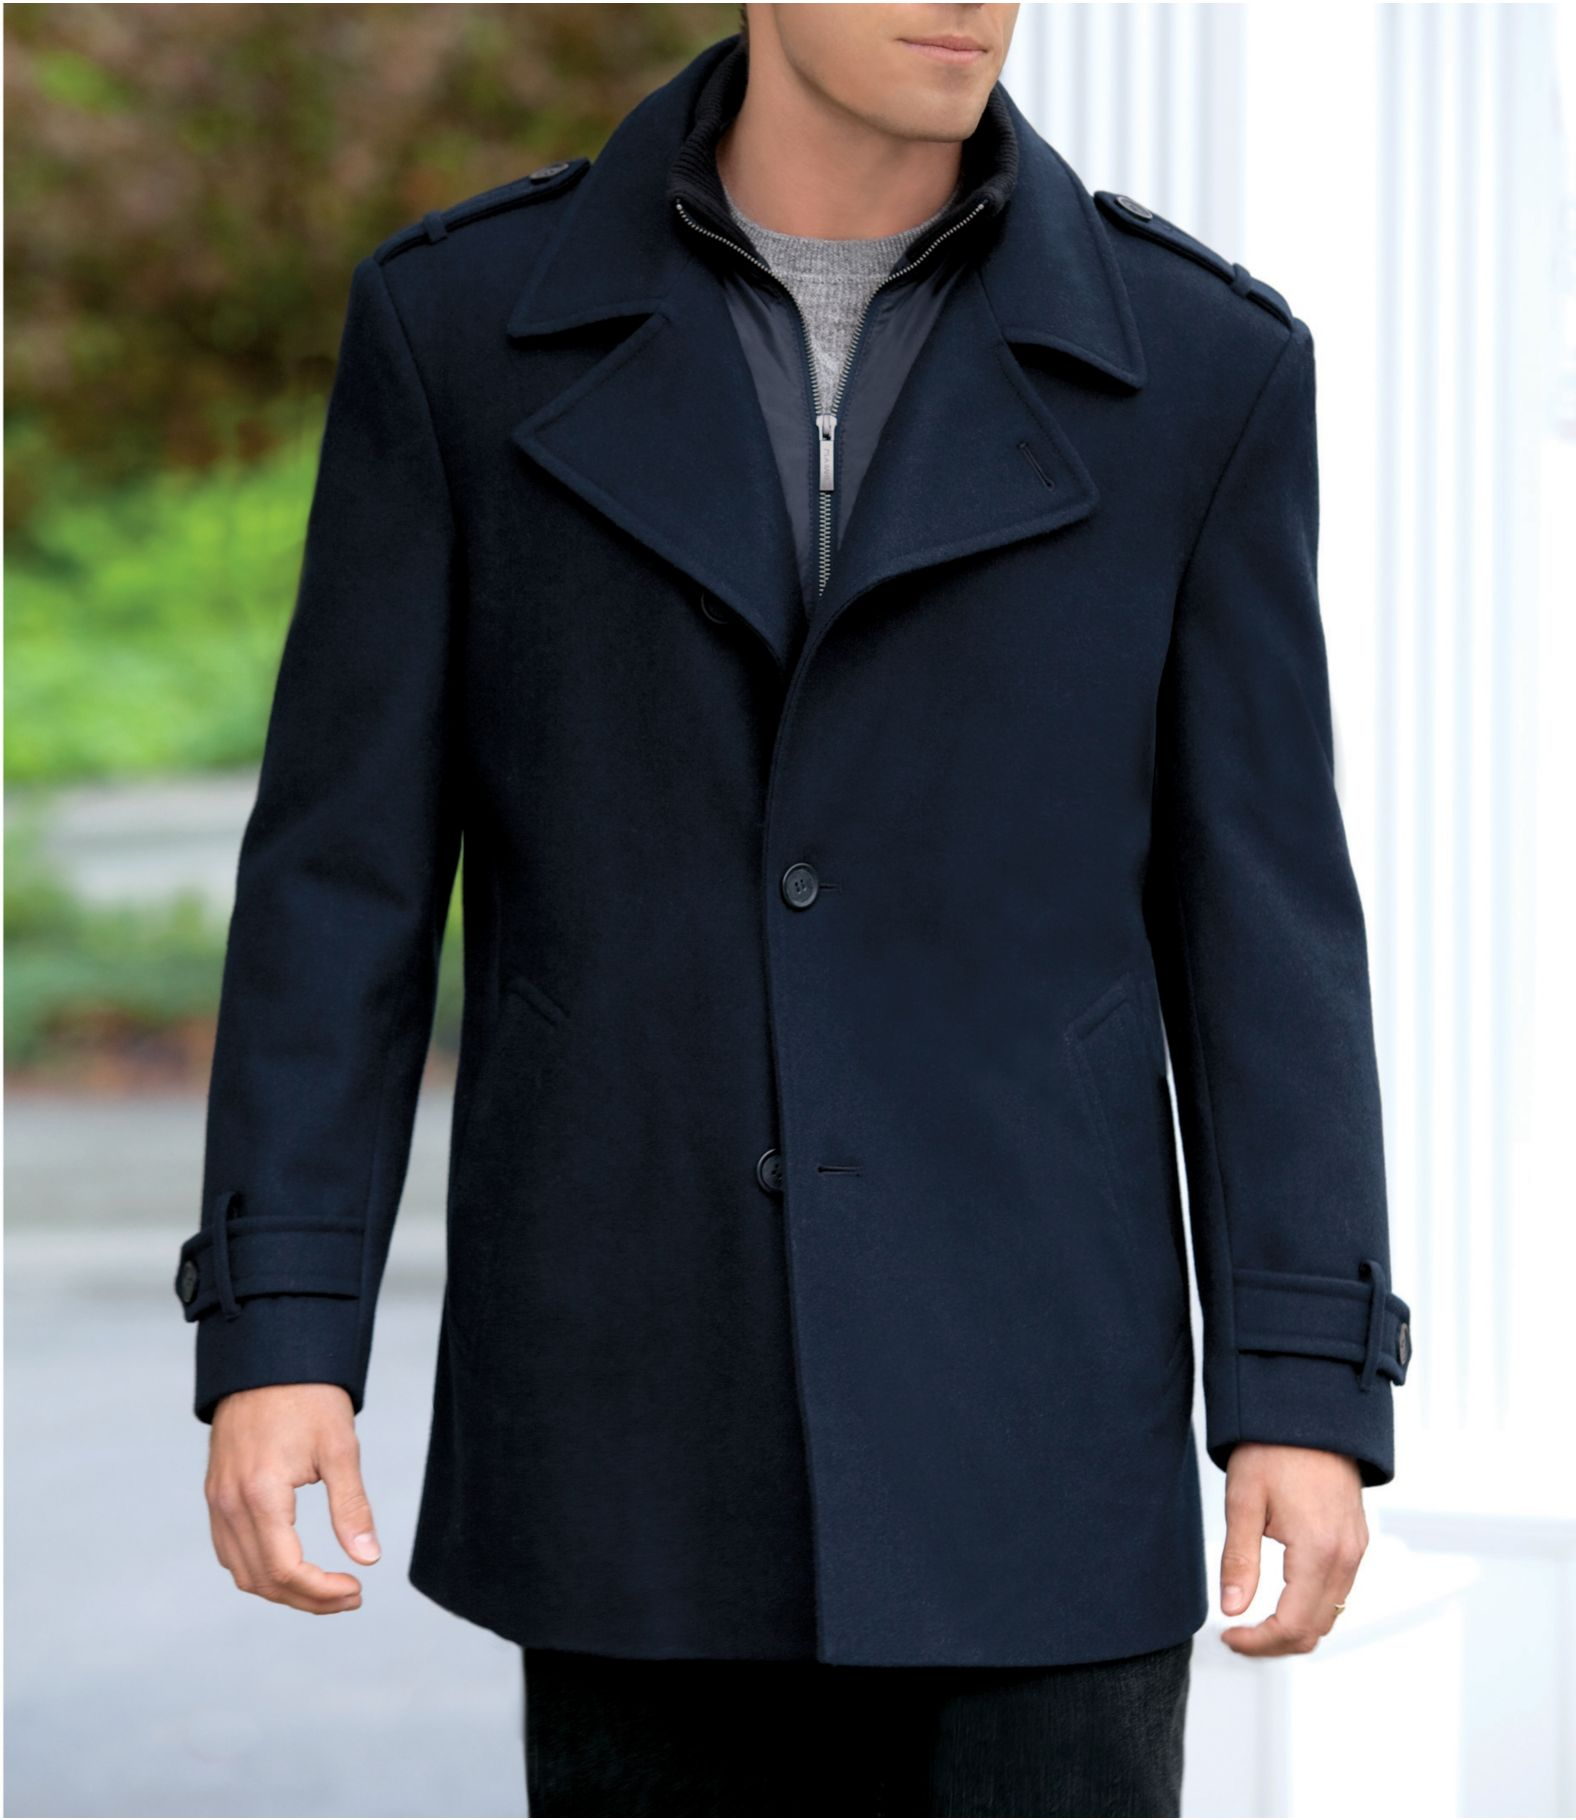 Jos. A. Bank Traditional Fit Wool Peacoat CLEARANCE - All ...